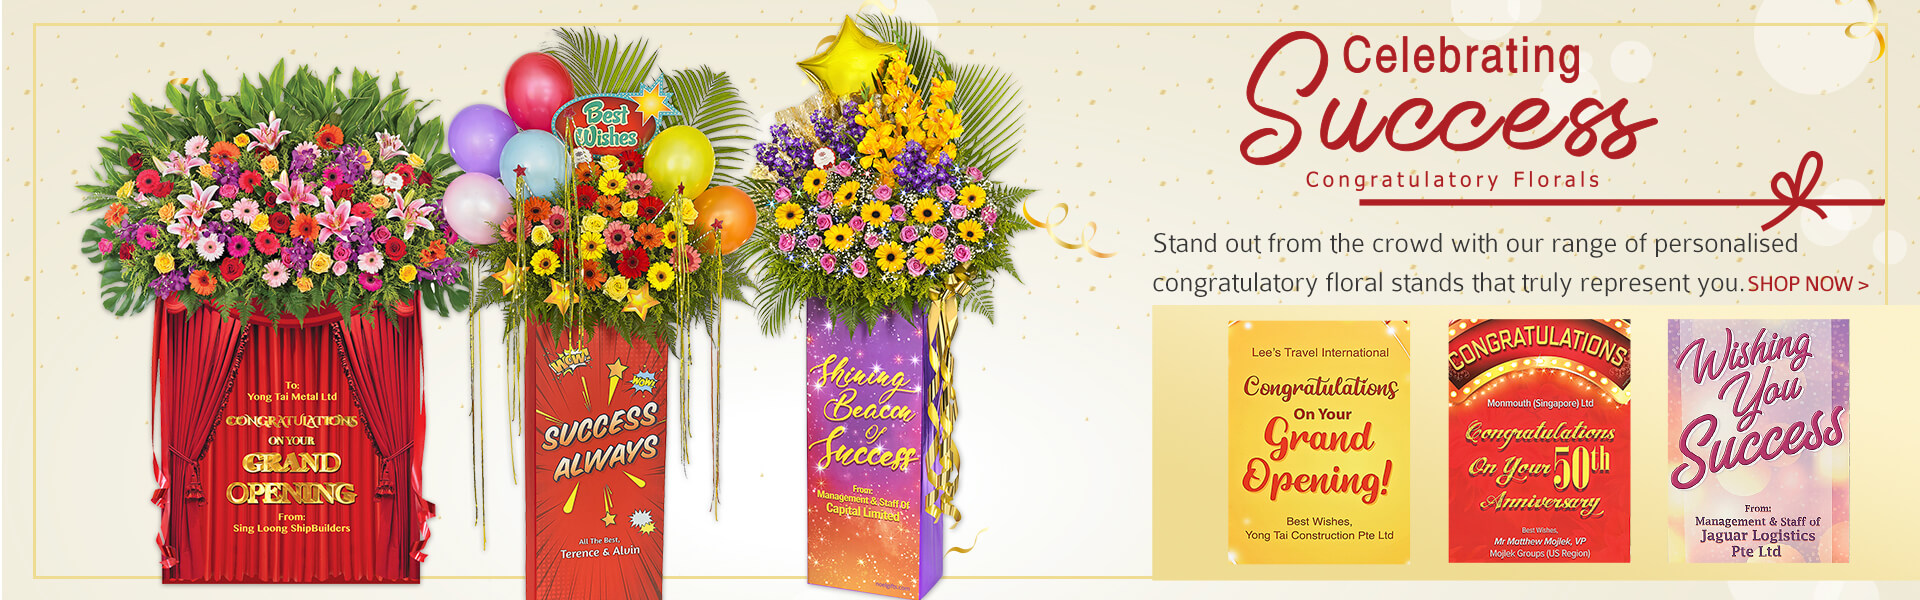 Online grand official opening flowers